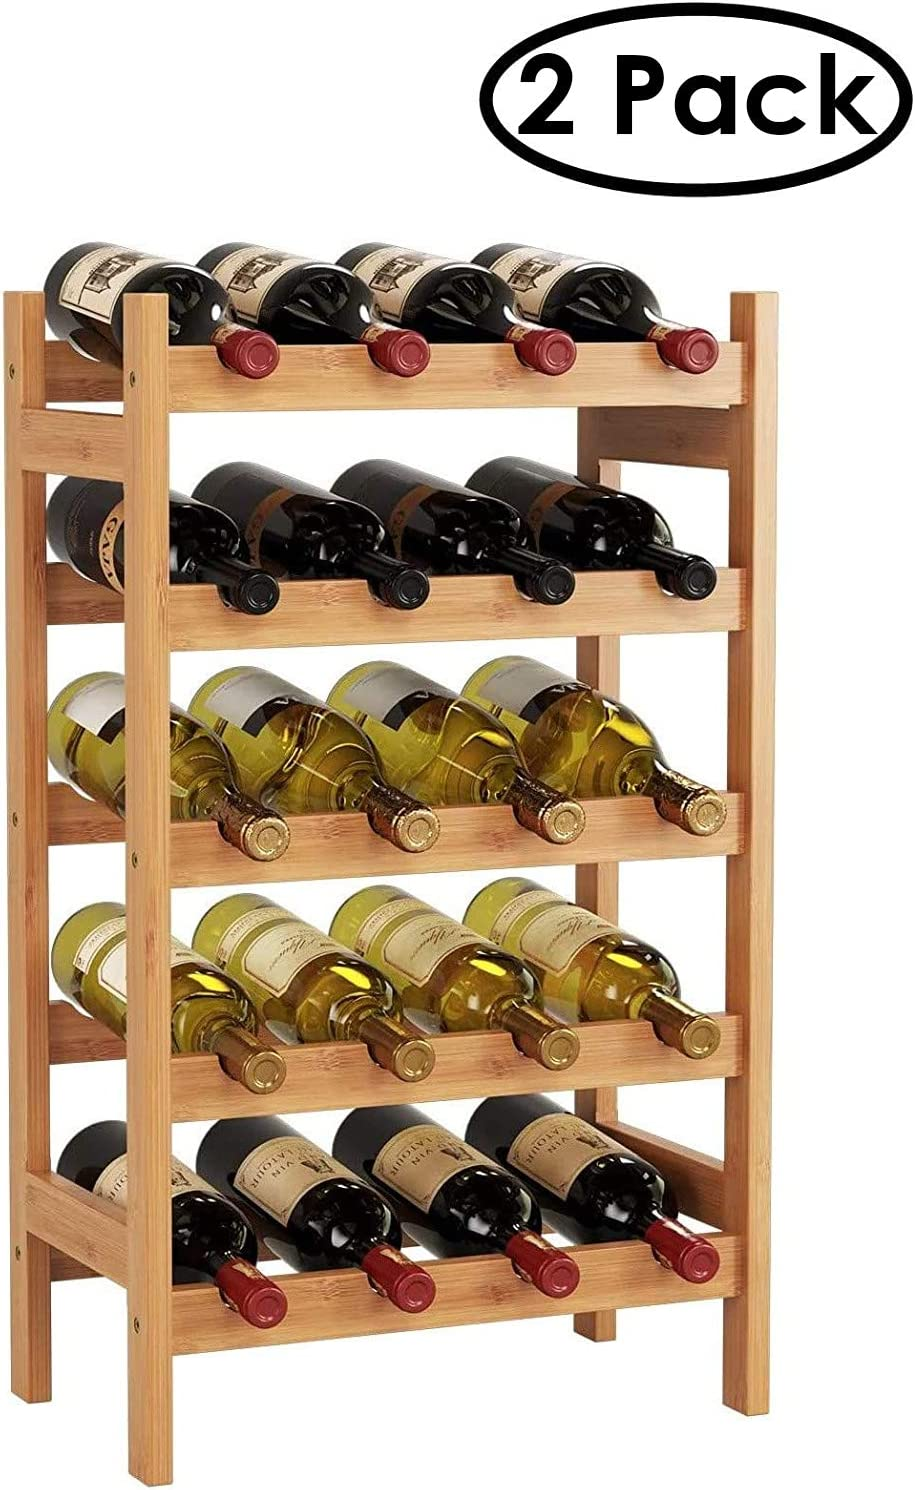 HOMECHO Bamboo Wine Rack with 5-Tier Storage Shelf 20 Bottles Display Stand Shelves Free Standing Wobble-Free Natural, 2 Pack, 43.5 x 25 x 73 cm